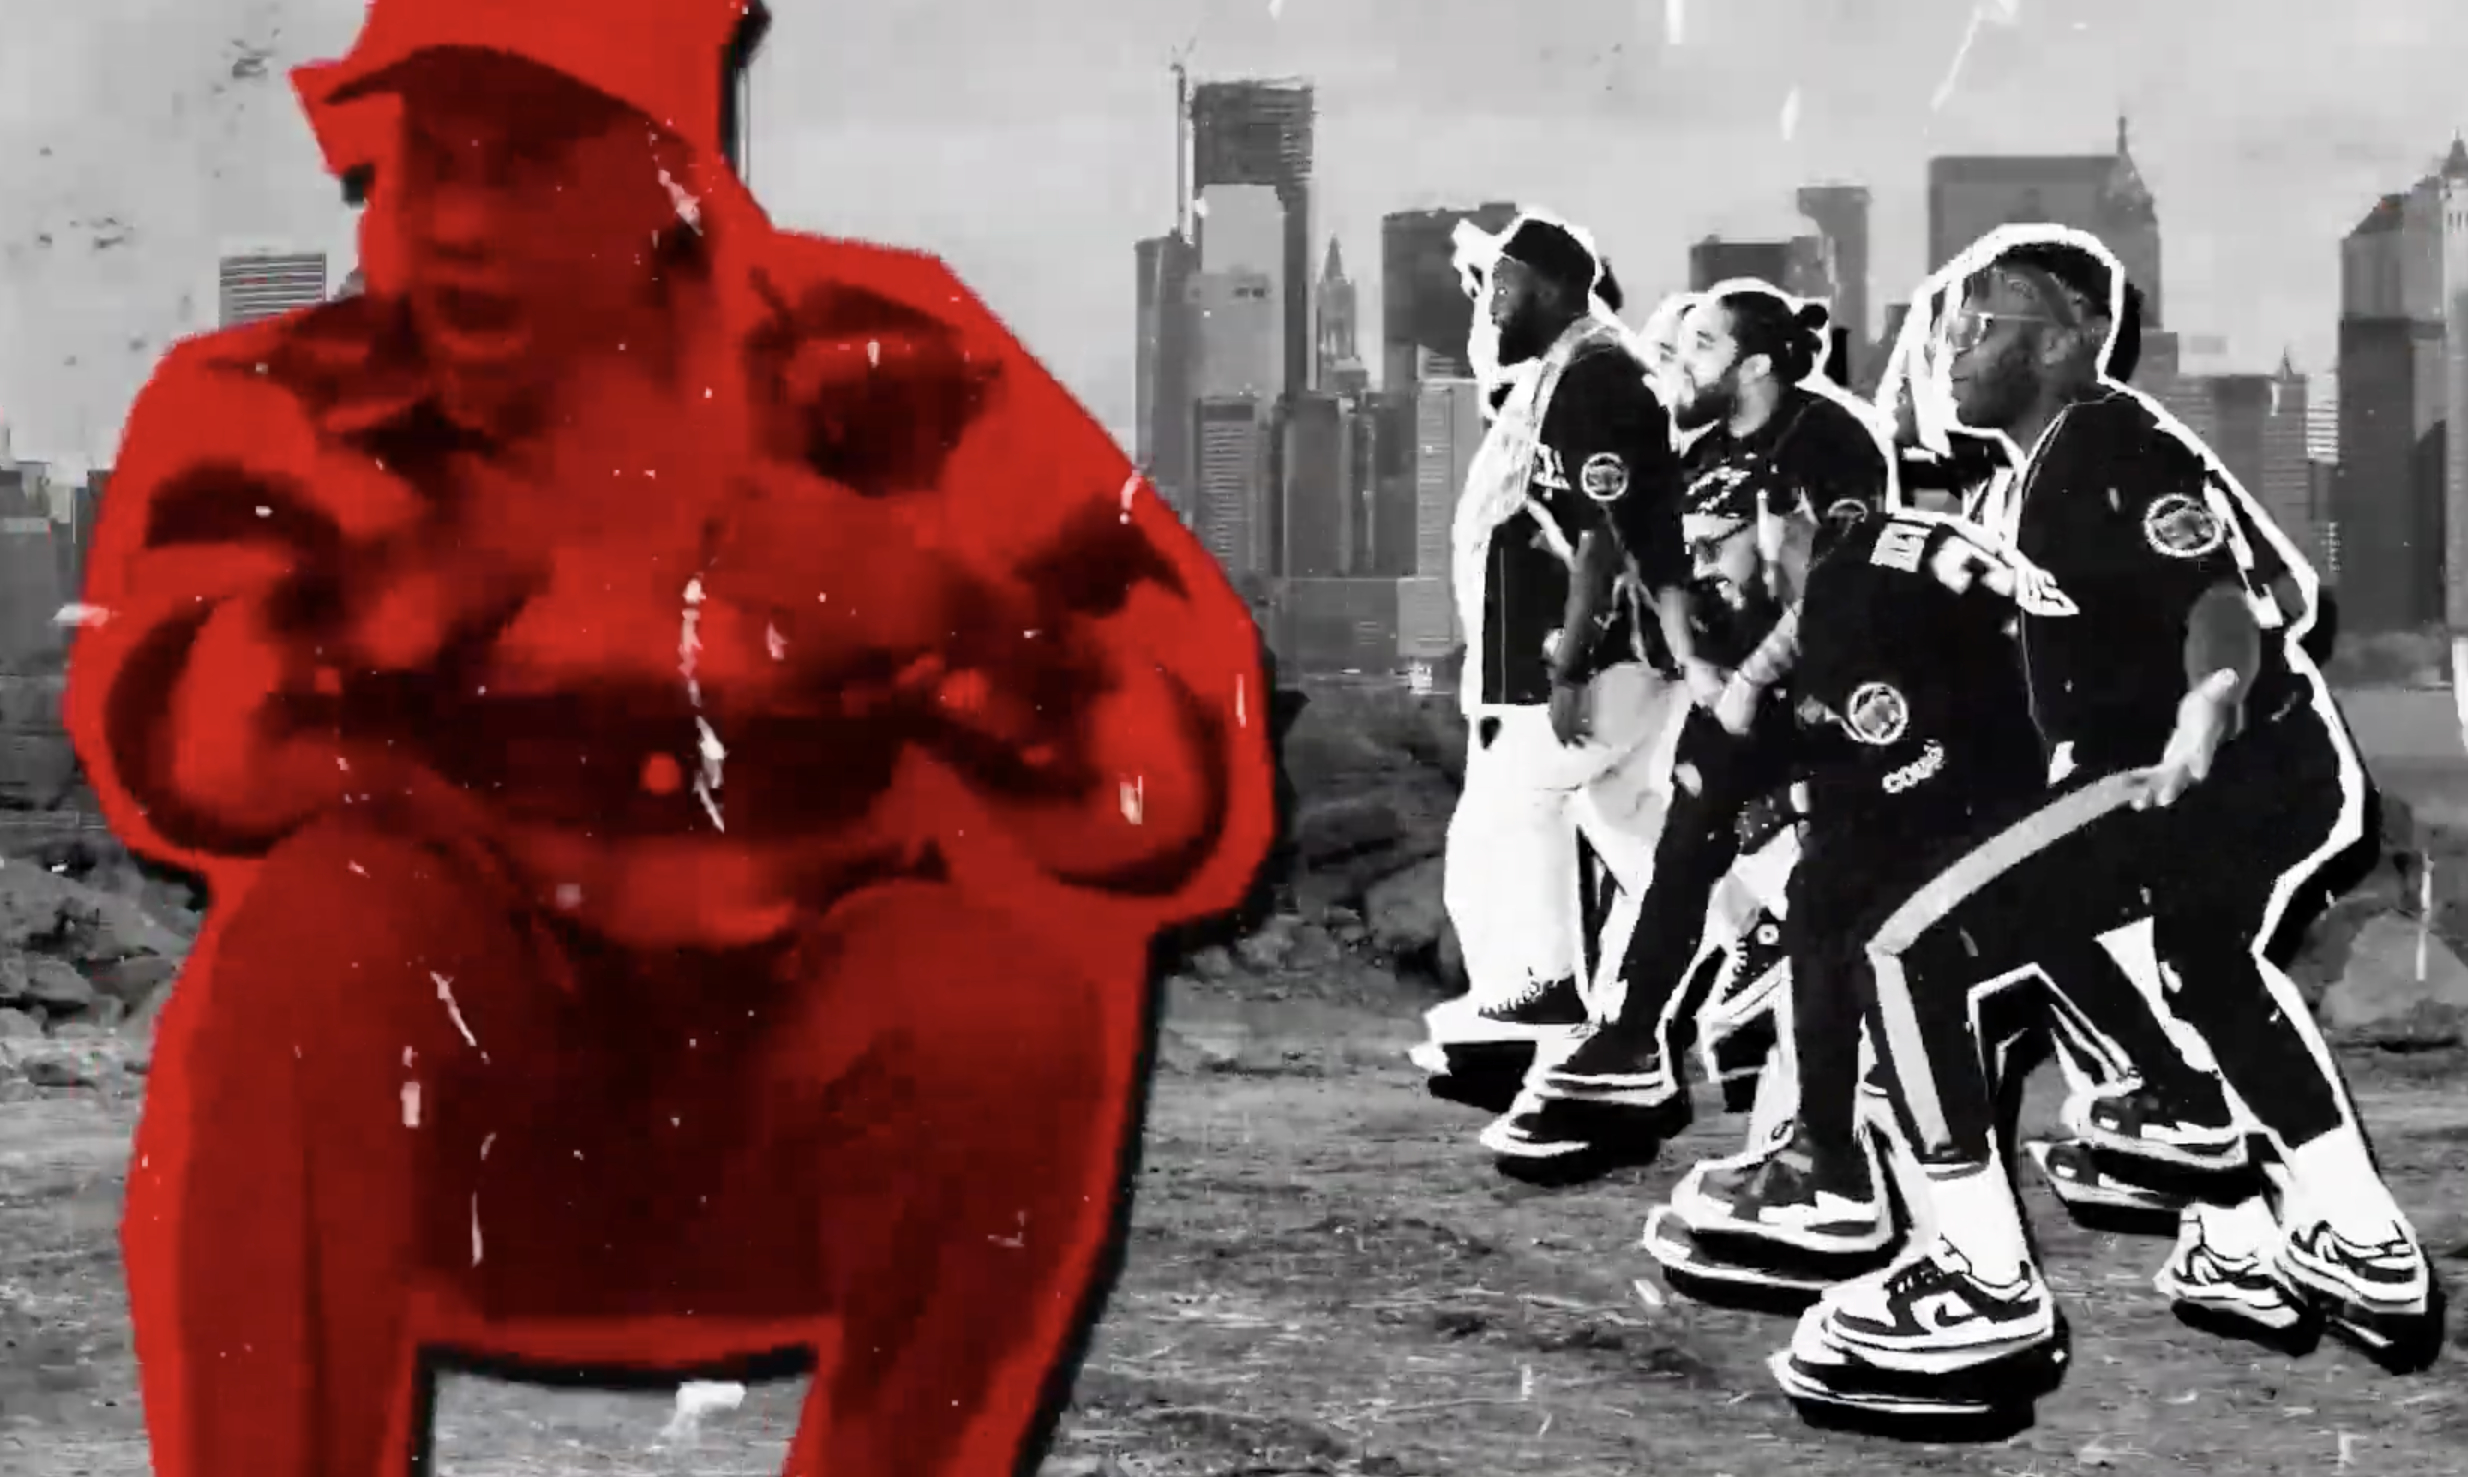 WATCH: Oxymorrons' Energetic Video For 'Definition' Featuring Jason Aalon Butler